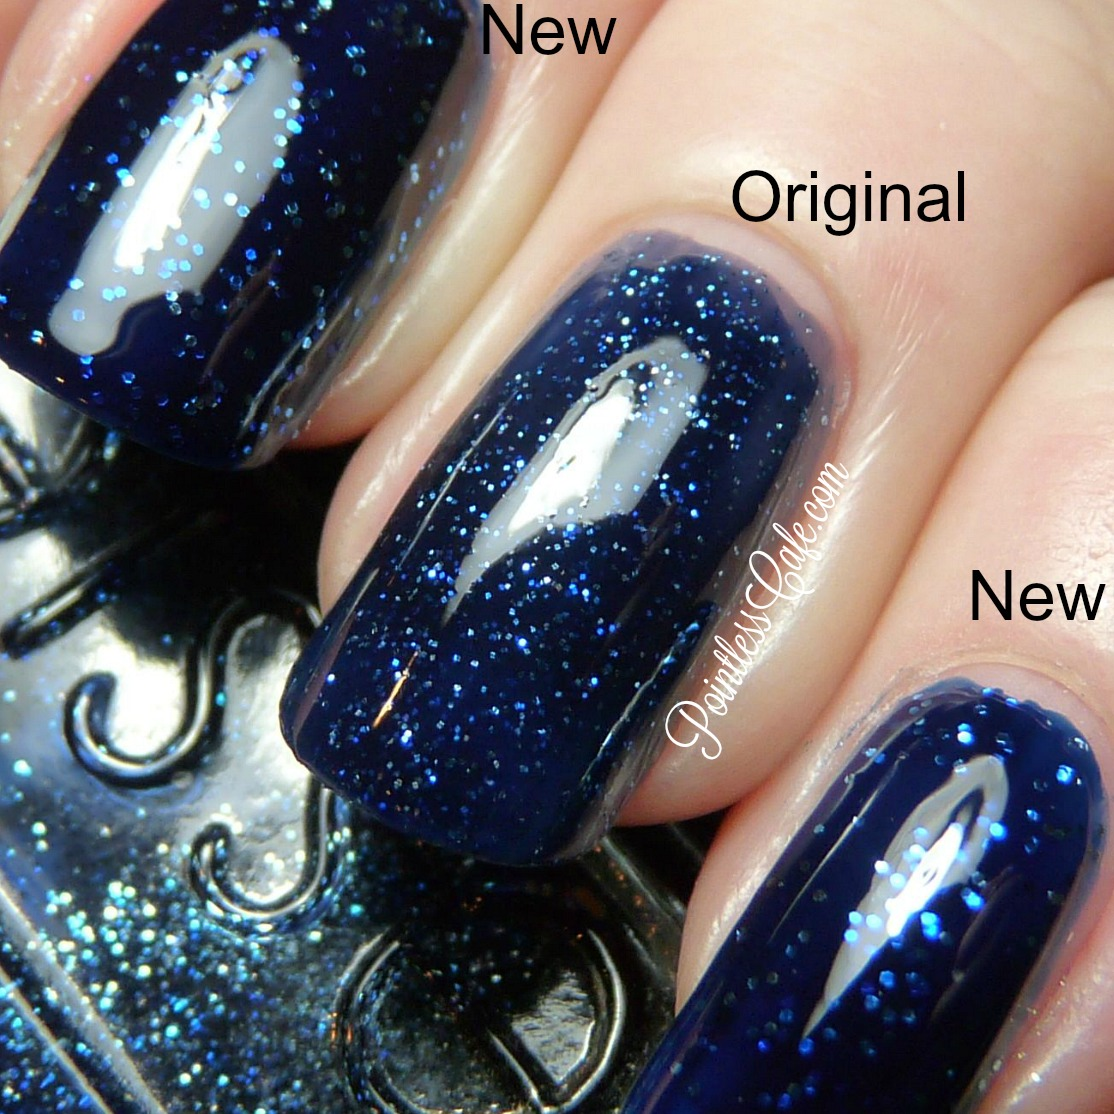 Essie Starry Starry Night - New Version Vs Original: Comparison ...